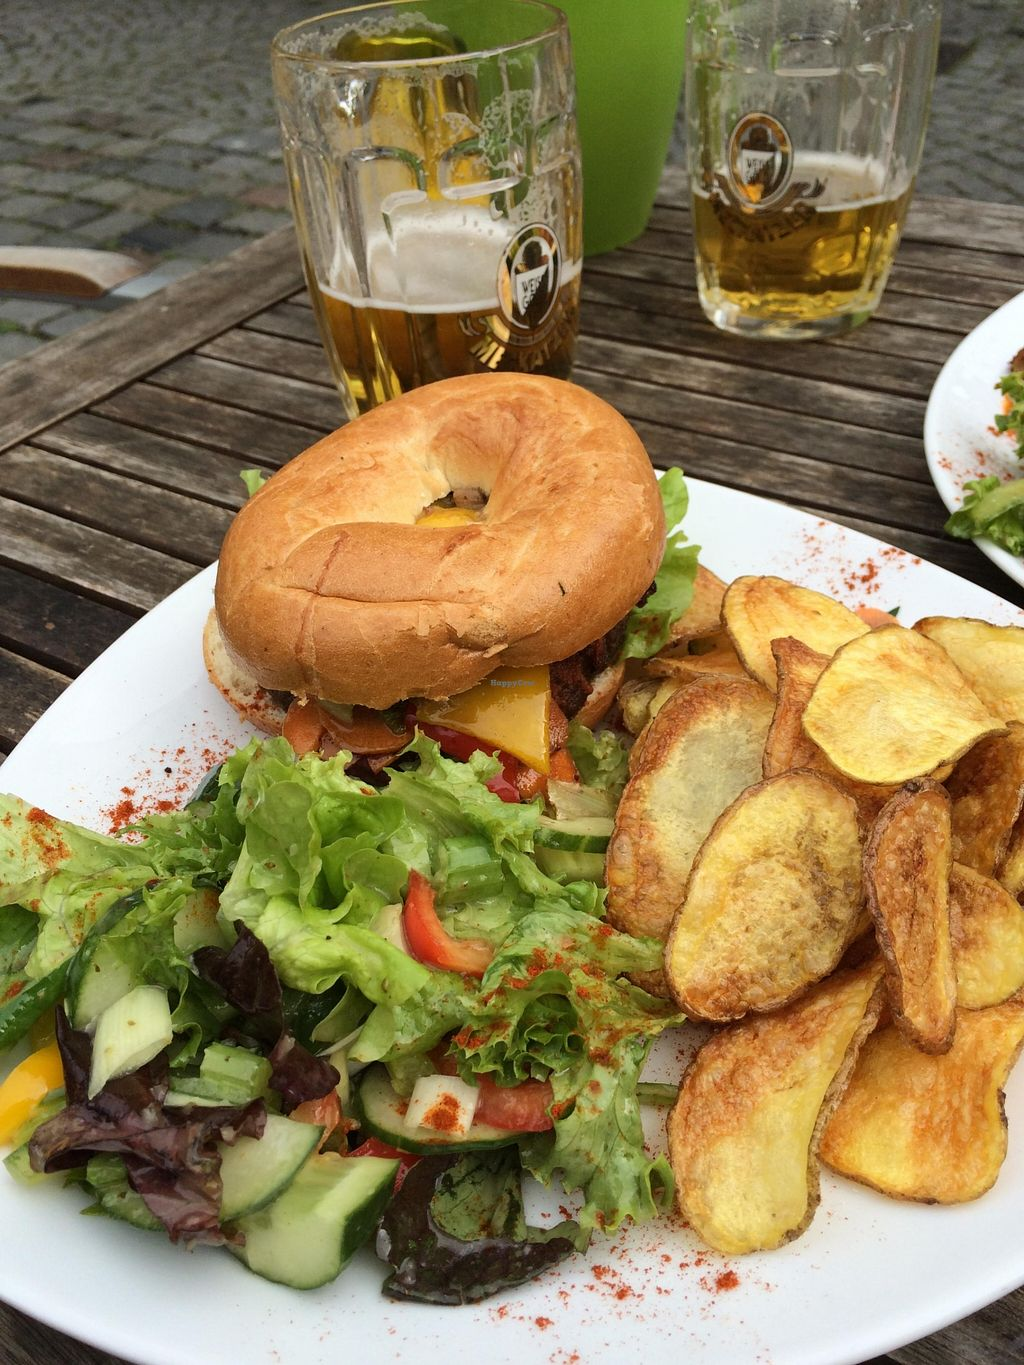 """Photo of Grossstadt  by <a href=""""/members/profile/ottofirn"""">ottofirn</a> <br/>Special Bagel Burguer (Vegan) <br/> September 22, 2015  - <a href='/contact/abuse/image/44224/118735'>Report</a>"""